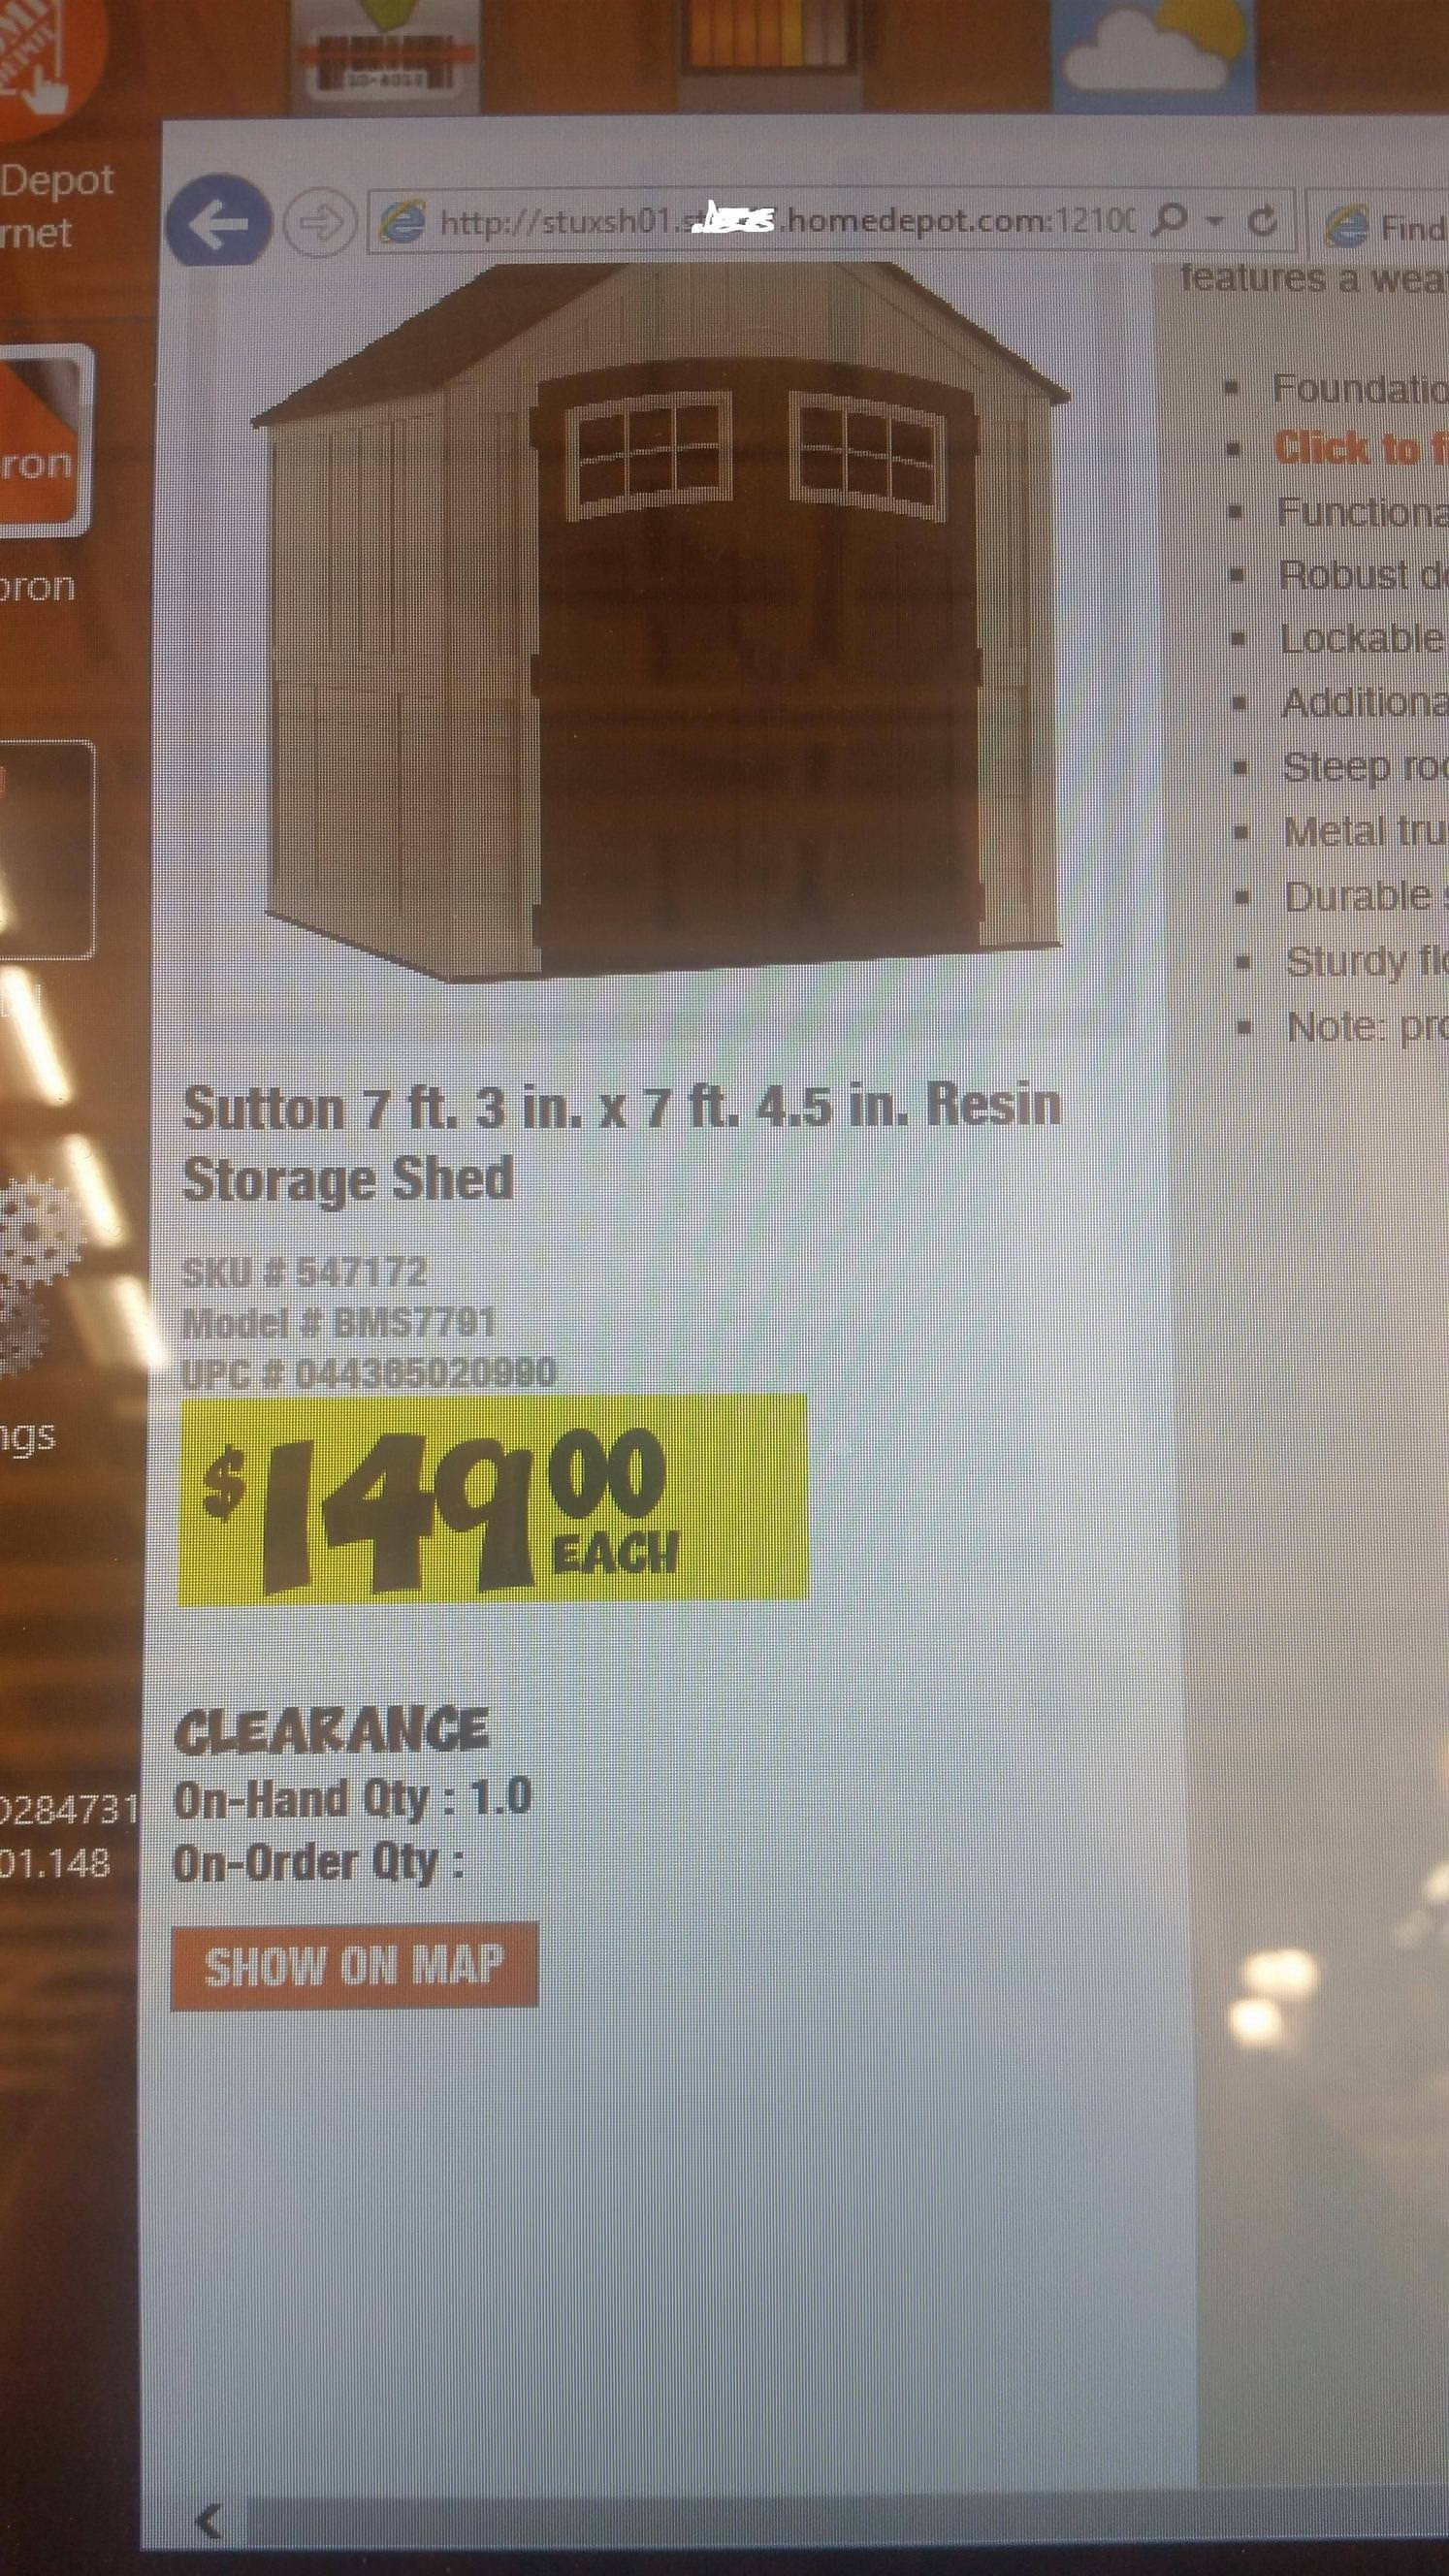 2018 Home Depot Clearance Thead The Garage Journal Board